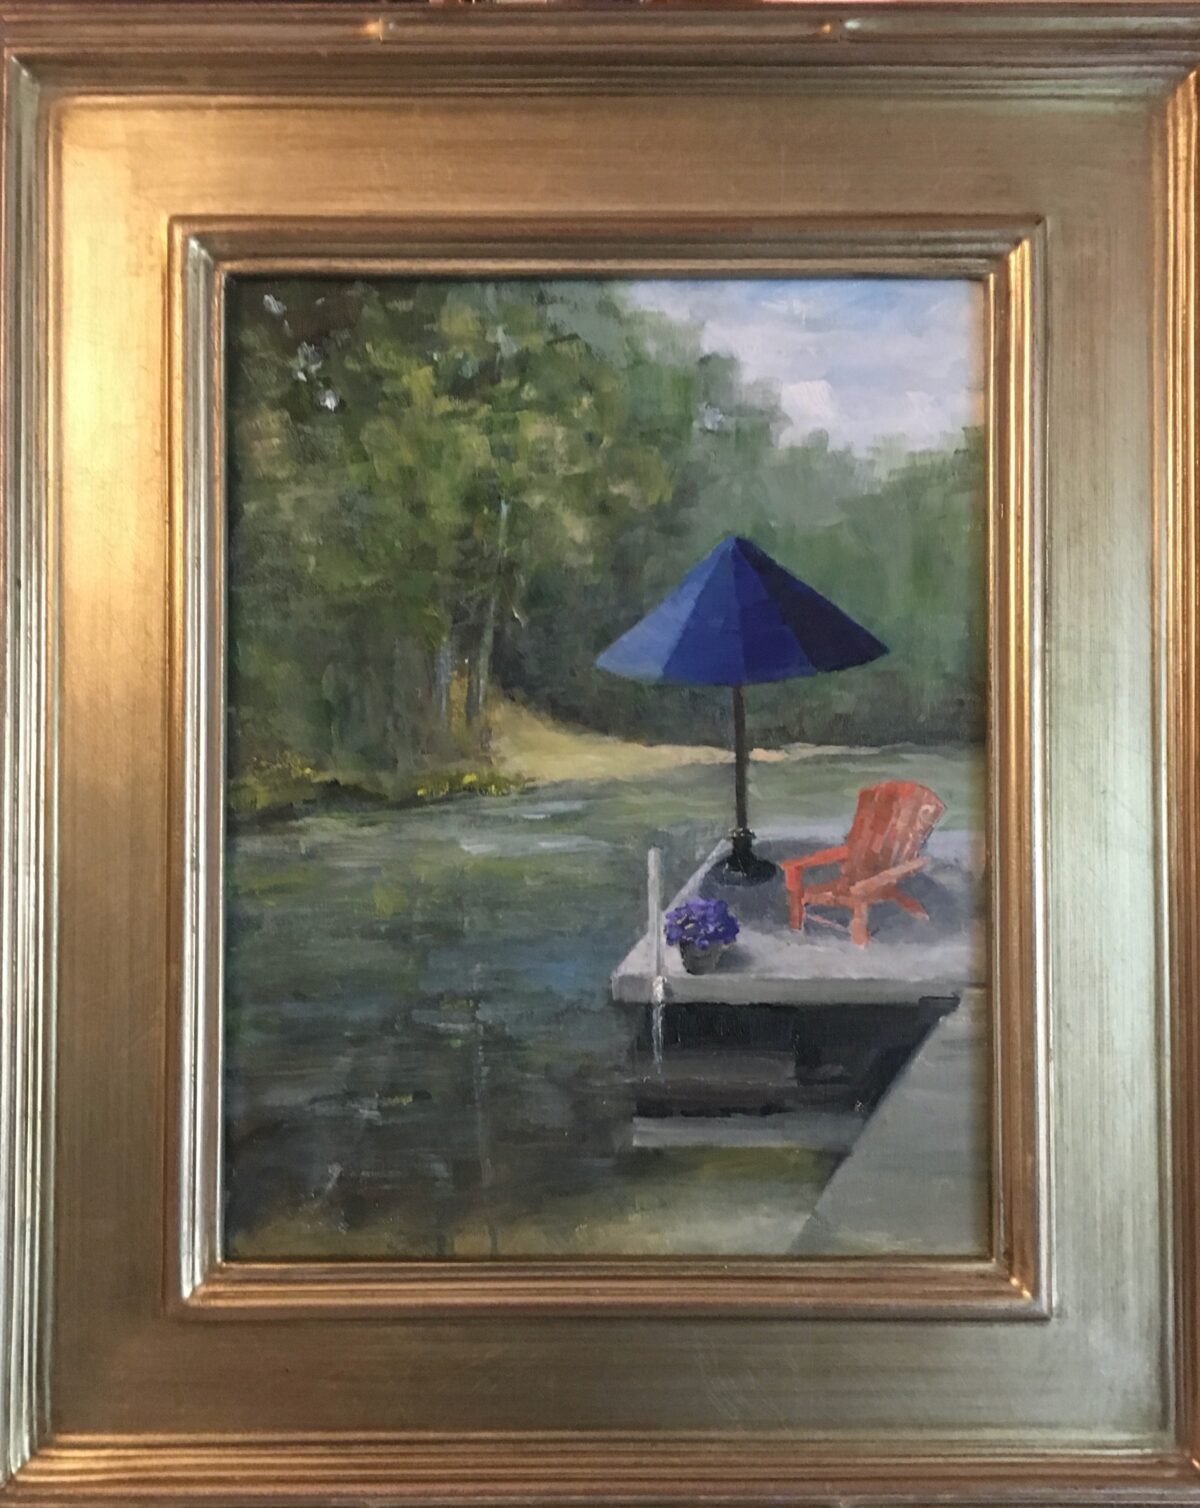 158 - Blue Umbrella - 14 x 11 - Landscape - $200